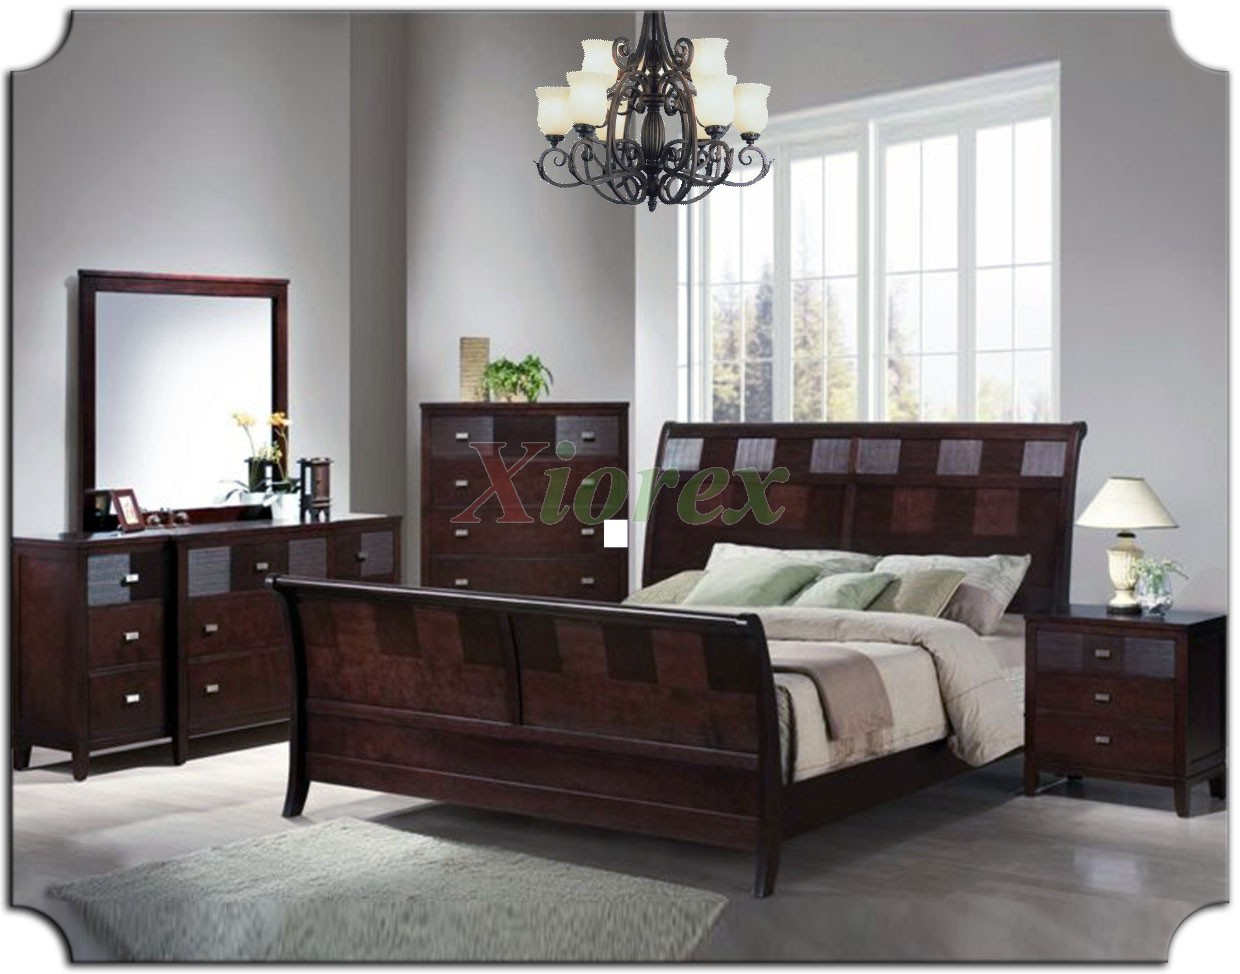 Sleigh bedroom furniture set xiorex